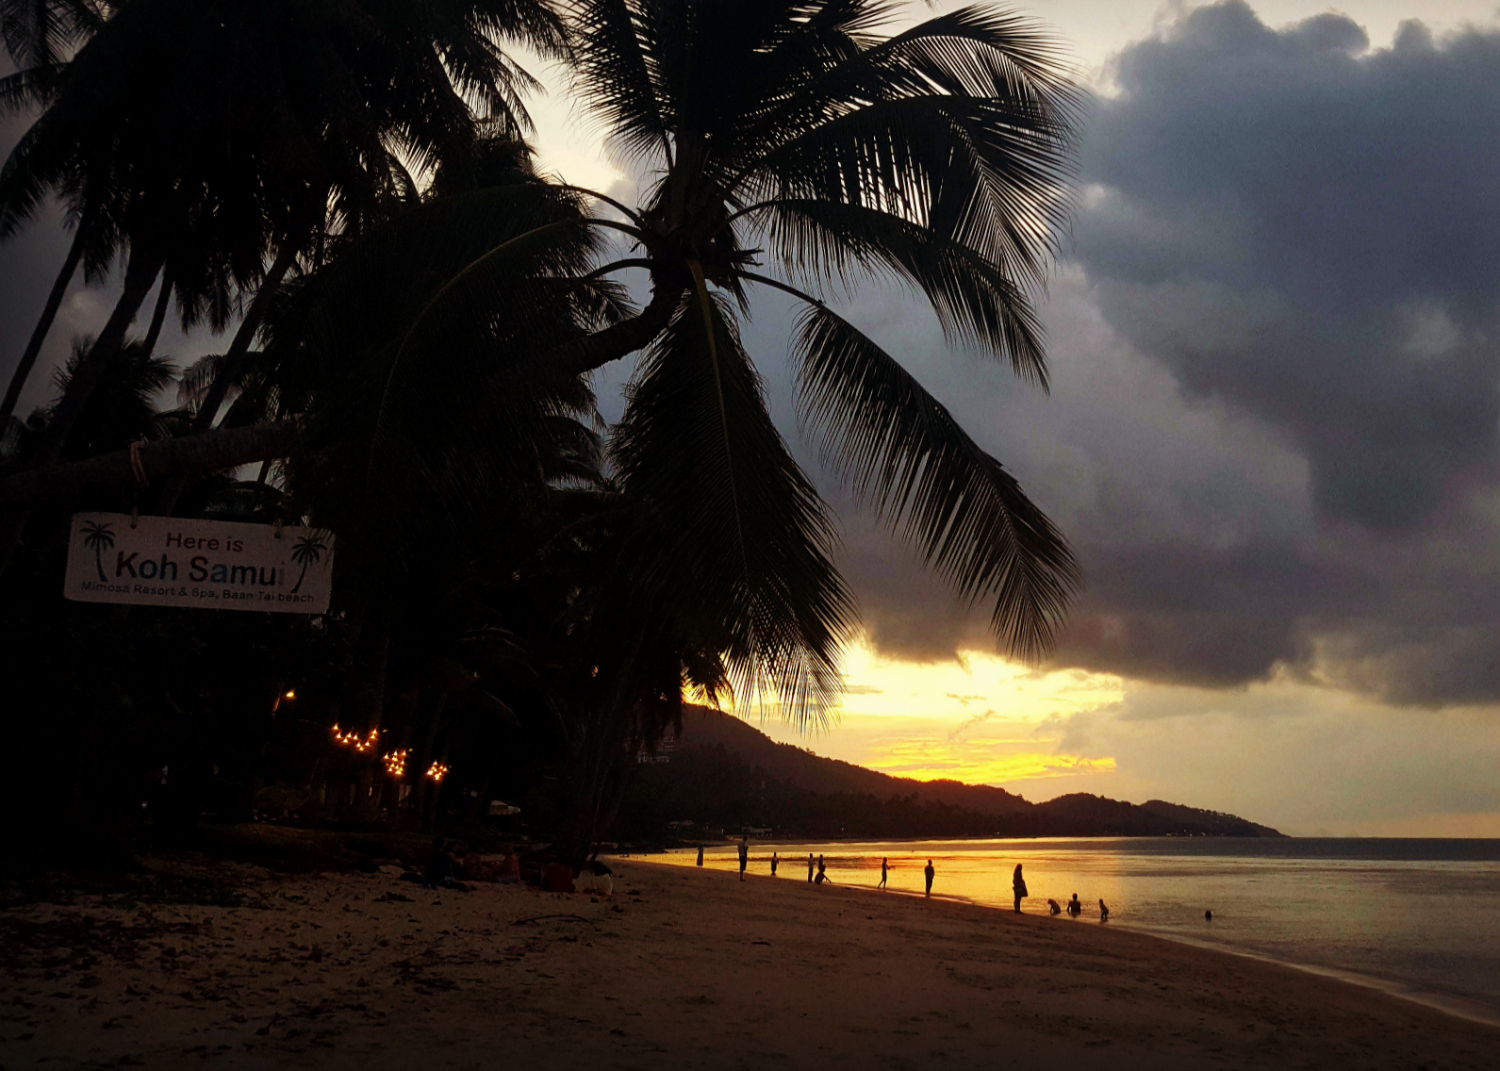 Bypassing backpackers and kicking back in Koh Samui